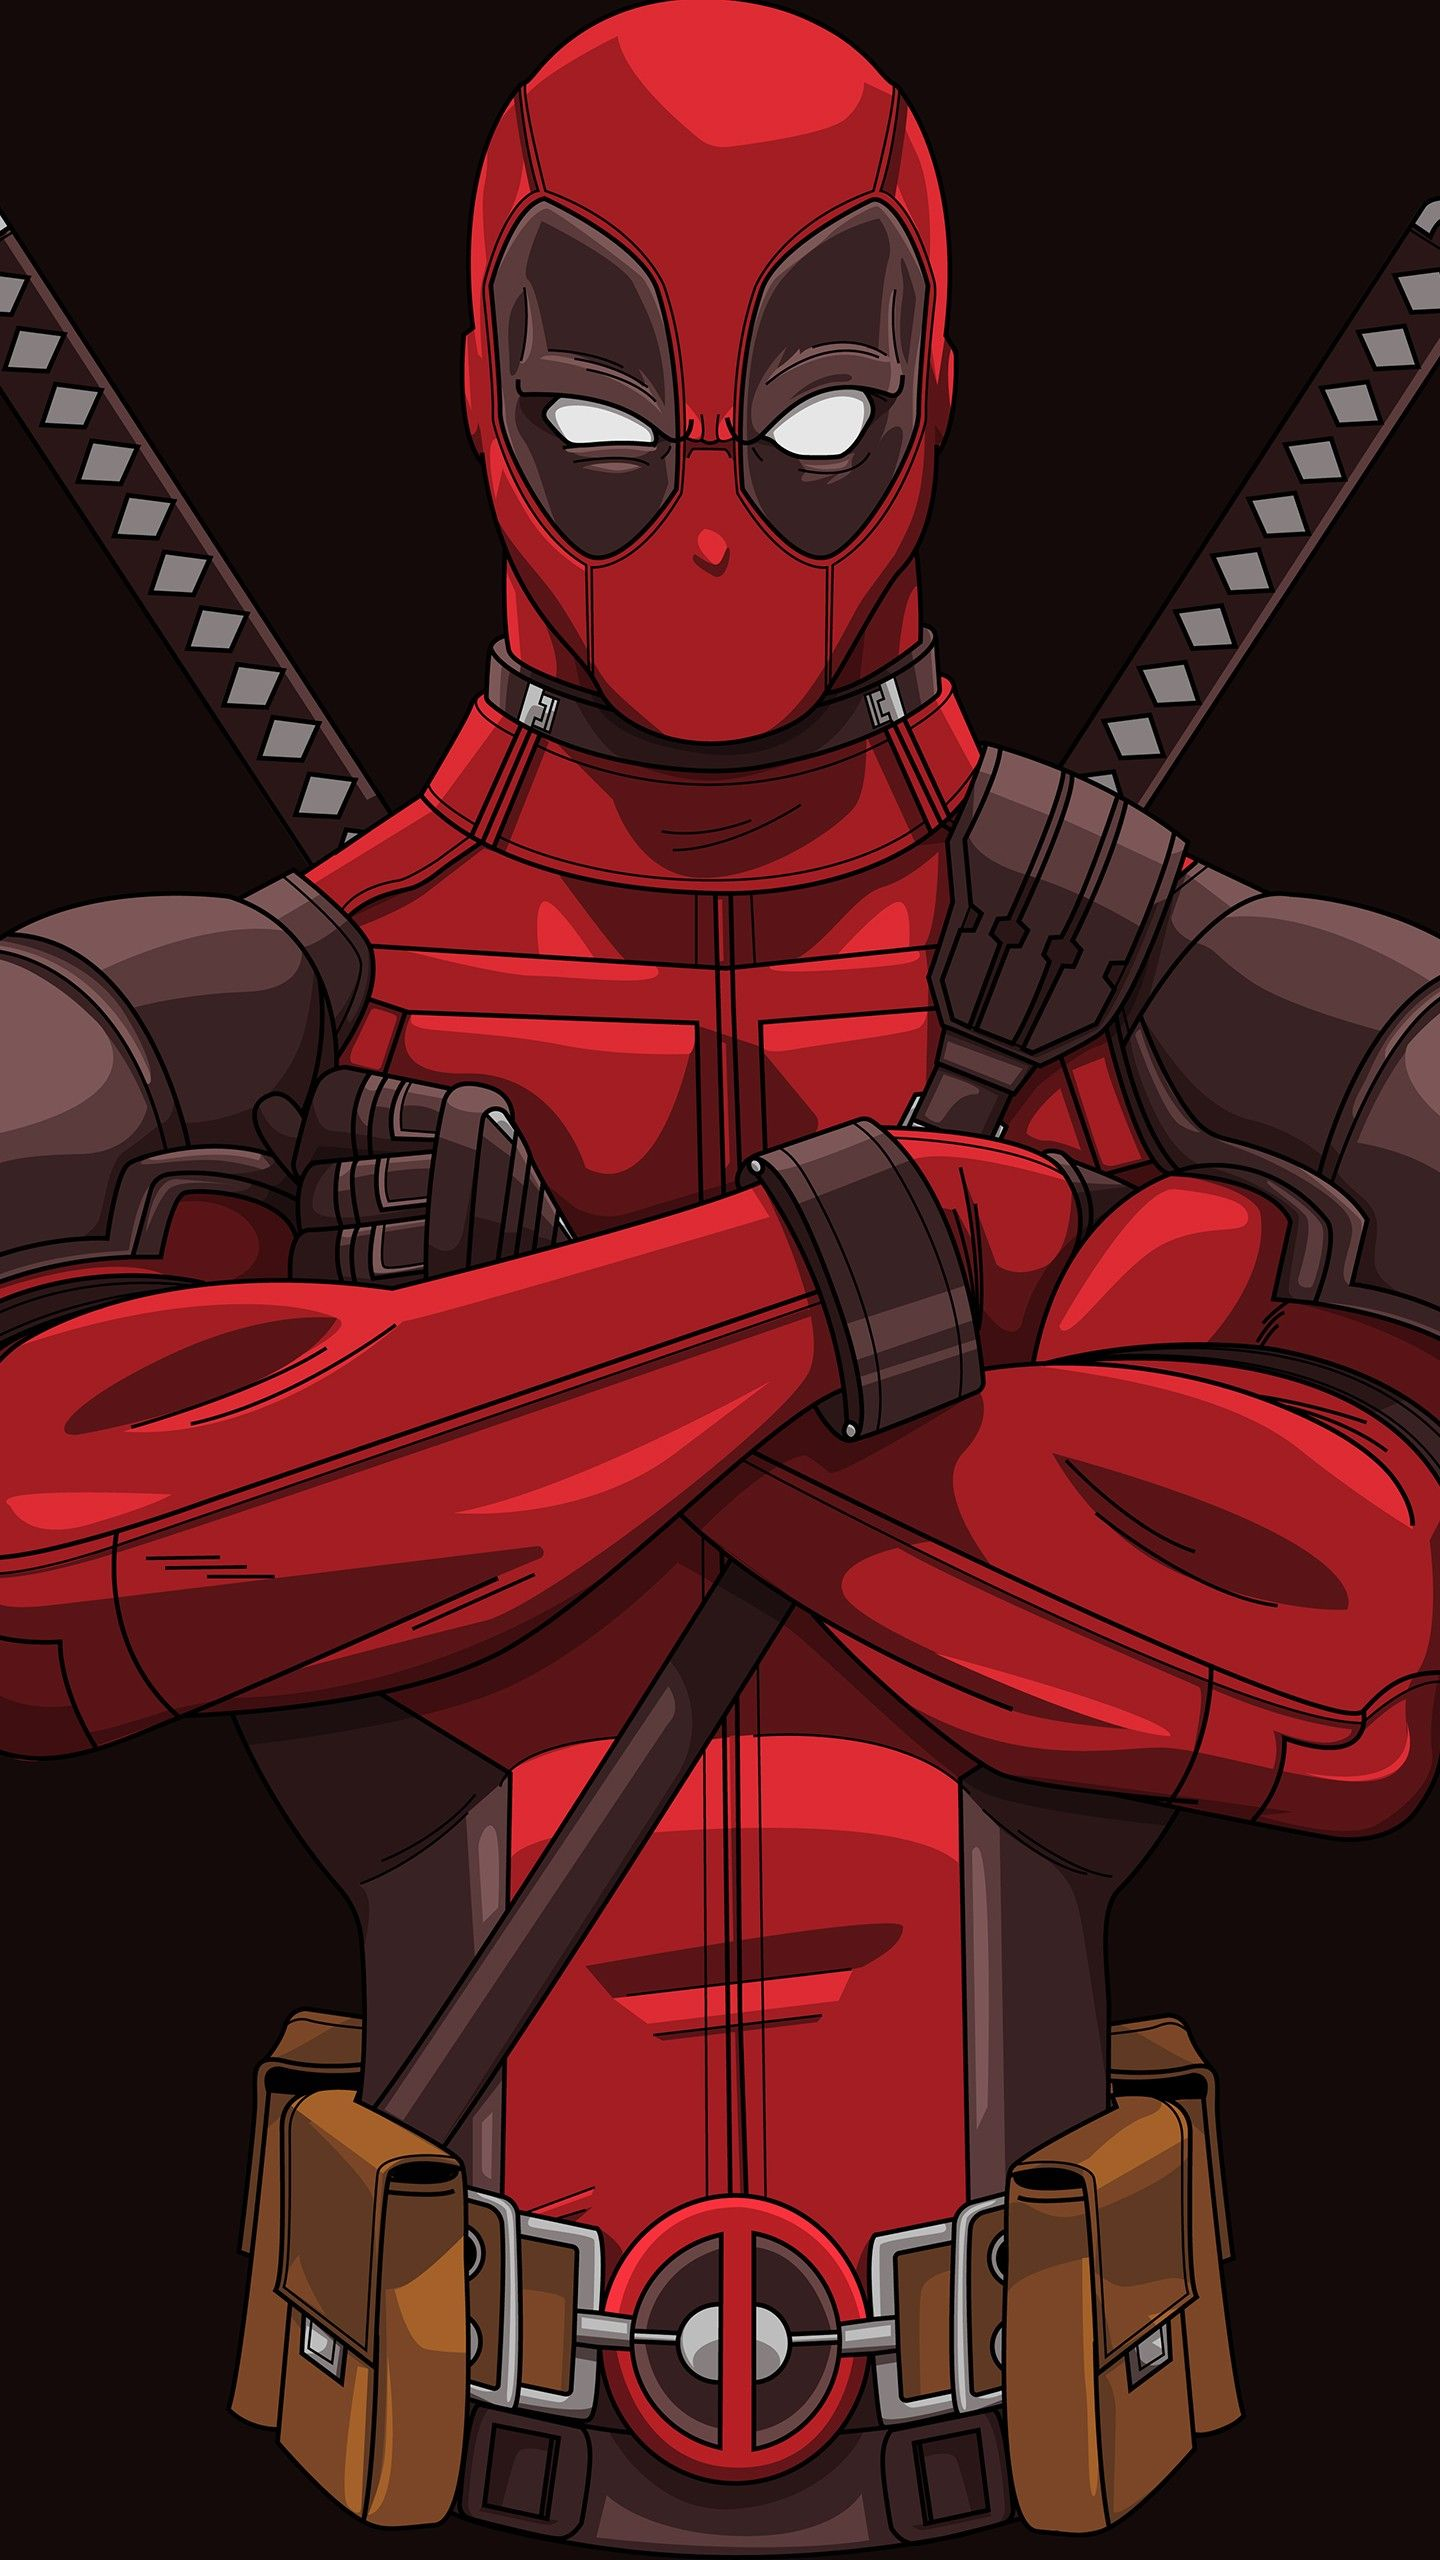 Misc Deadpool Minimal Artwork 4K 8K wallpapers